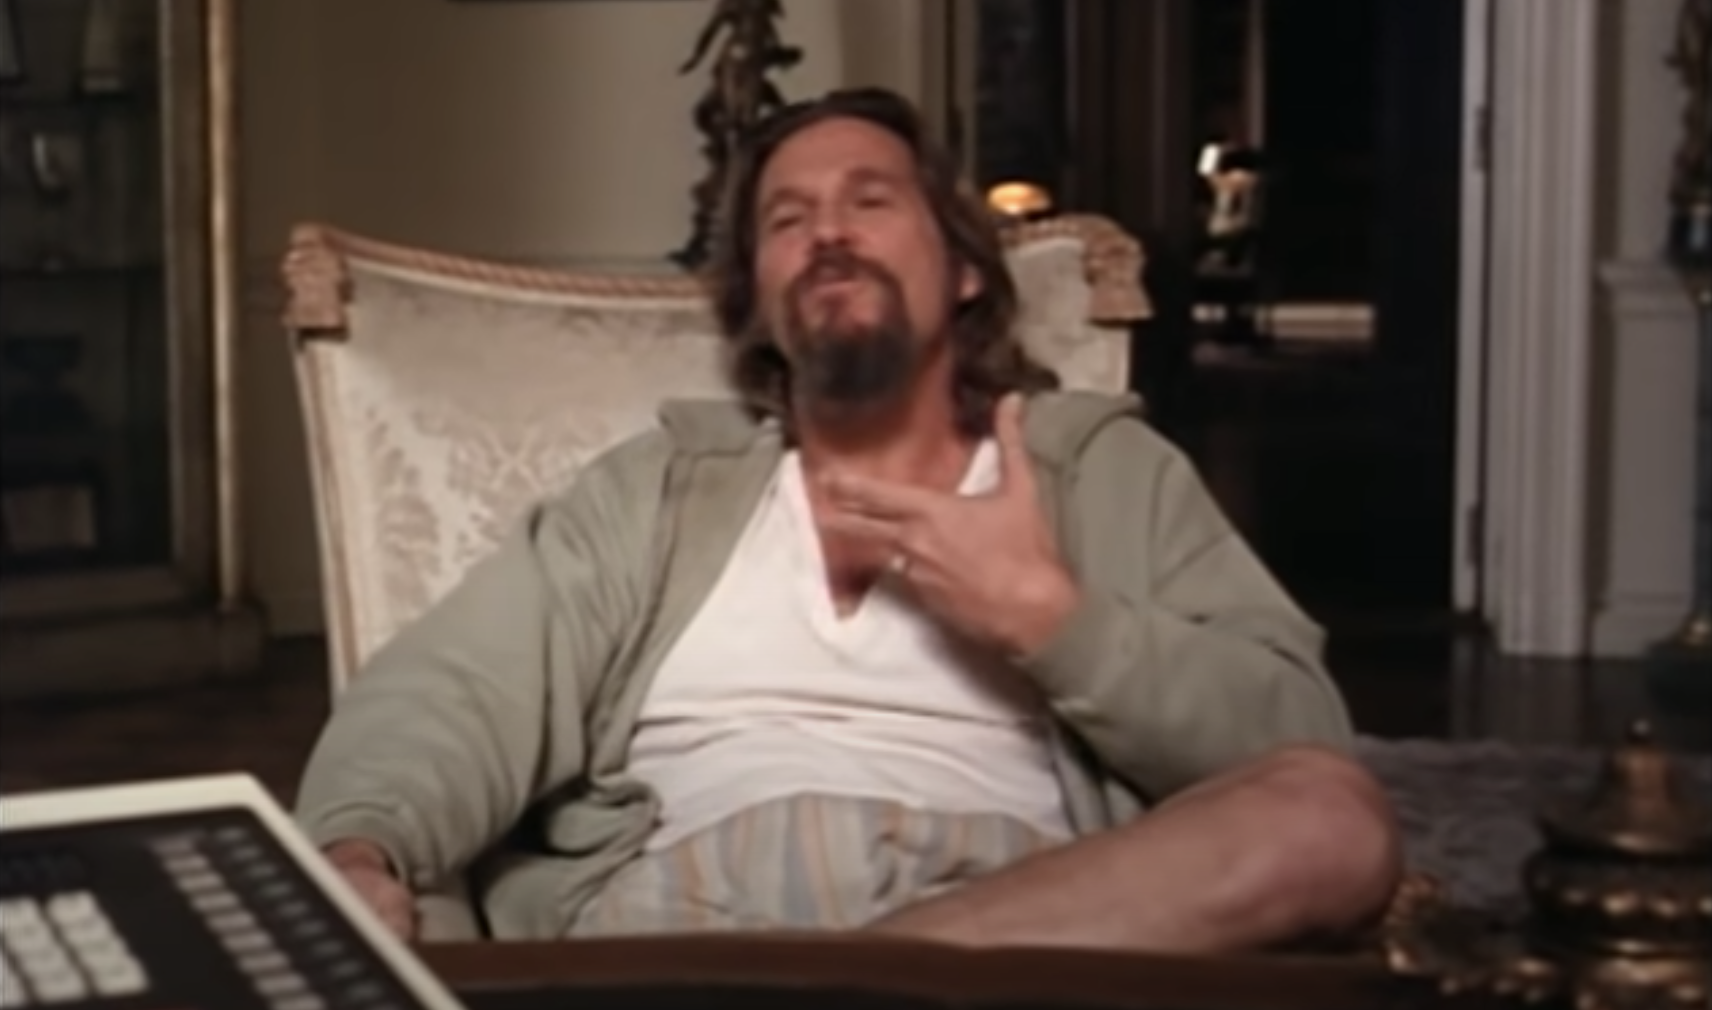 Jeff Bridges lounging in a chair as The Dude